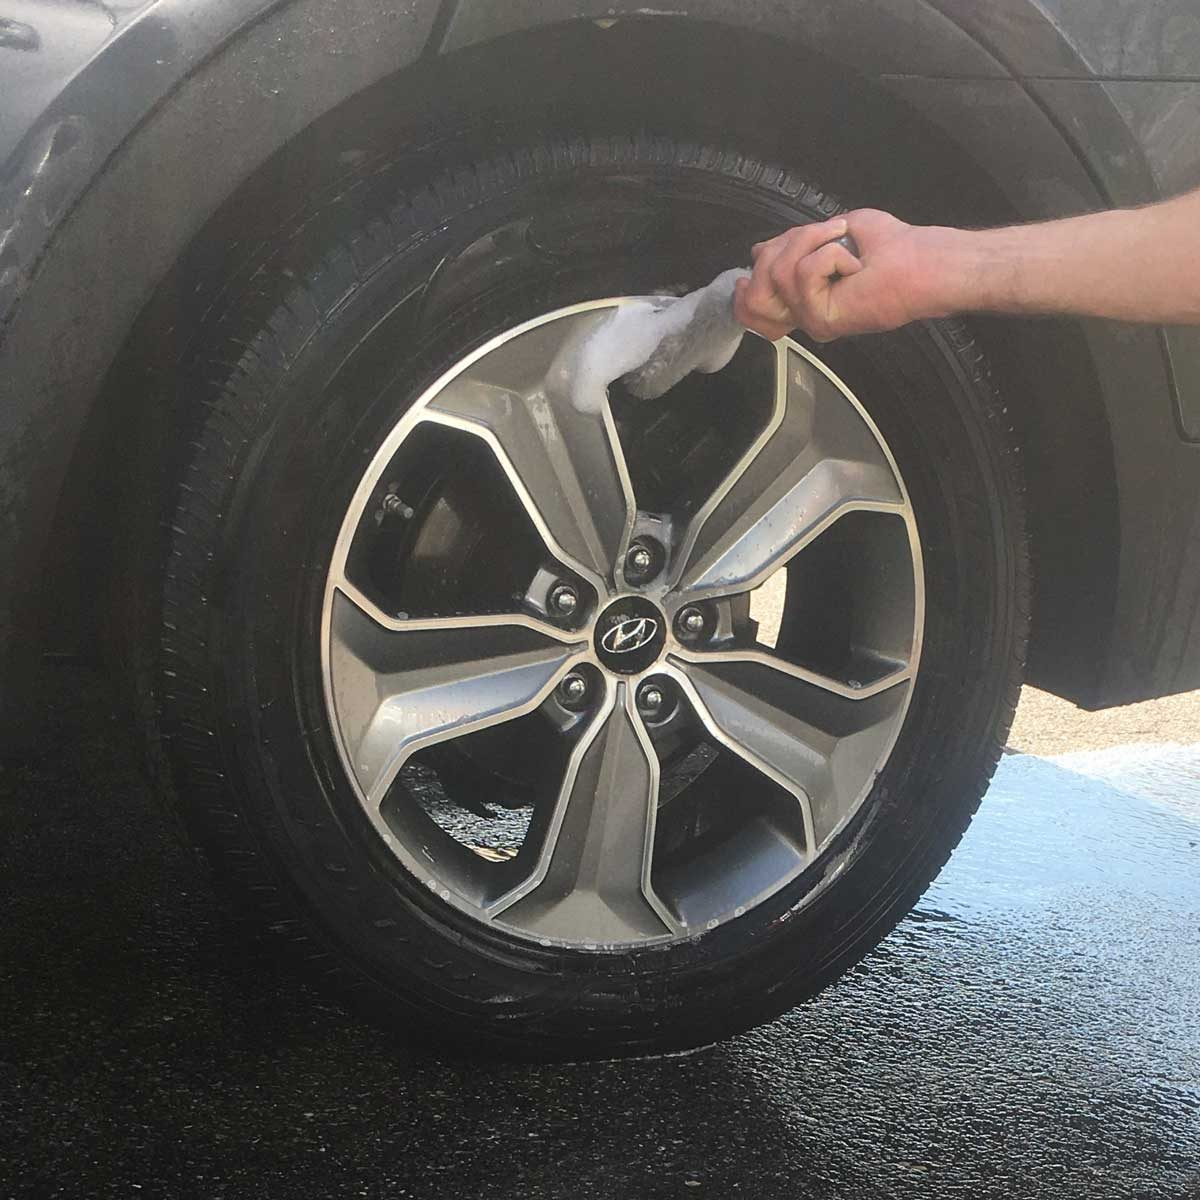 Cleaning tires